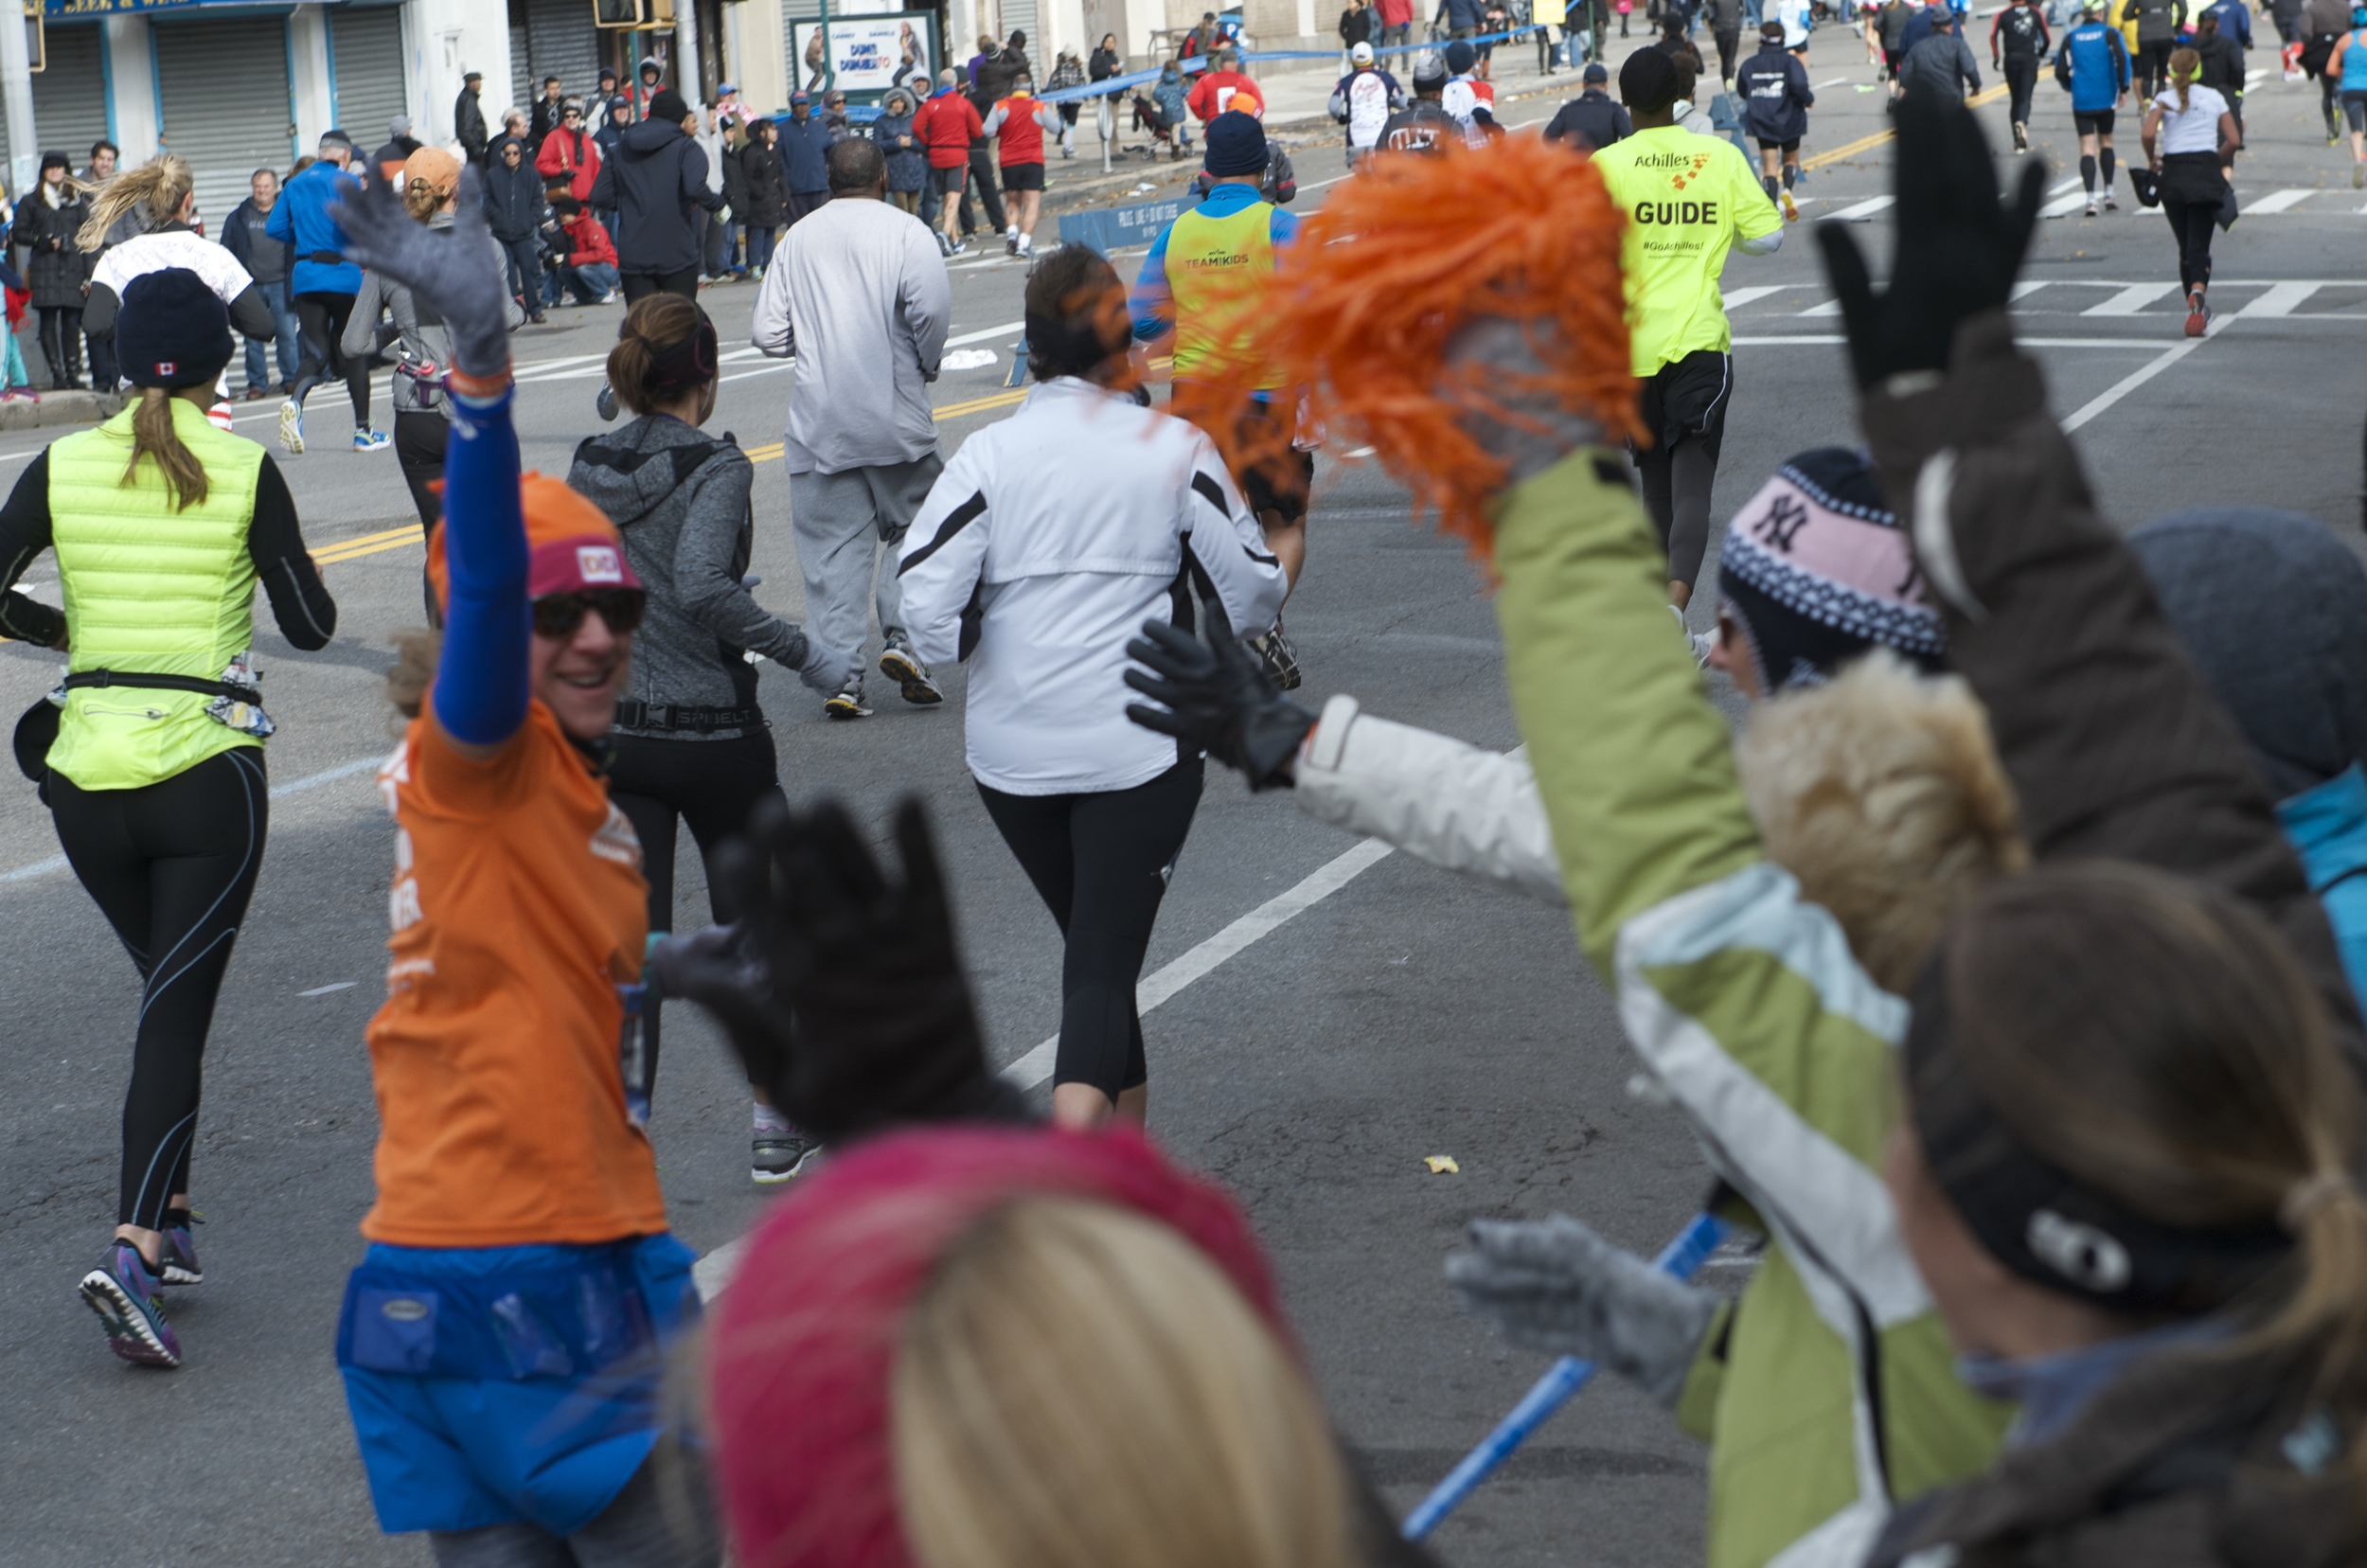 the photo for this post has been updated. showing the fans that supported me at the NYC Marathon and how happy I was to have them there. Each one helped me through this race. Even the people I didn't even know, but were cheering.